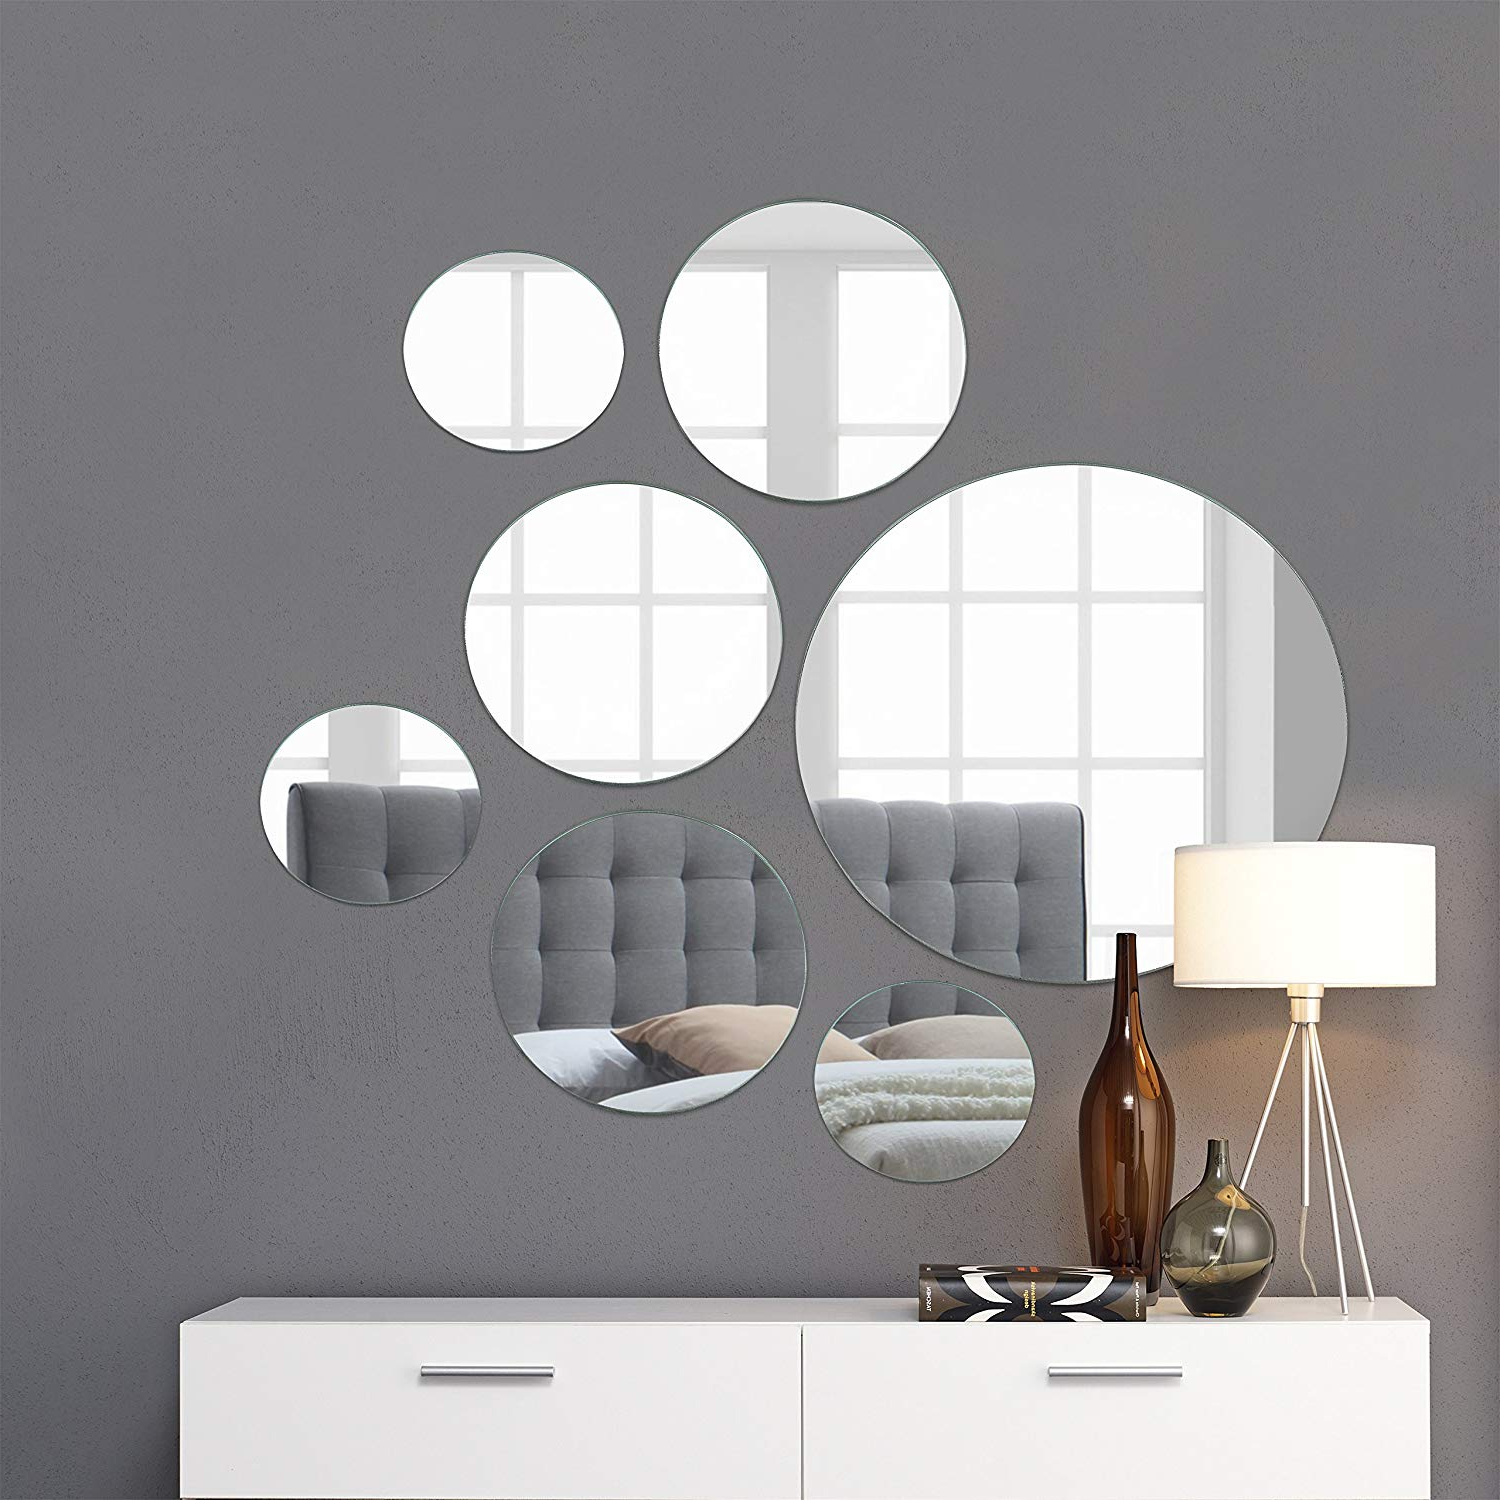 "Decorative Cheap Wall Mirrors In Most Recently Released Light In The Dark Medium Round Mirror Wall Mounted Assorted Sizes (1X10"",  3X7"", 3X4"") – Set Of 7 Round Glass Mirrors Wall Decoration For Living Room, (View 5 of 20)"